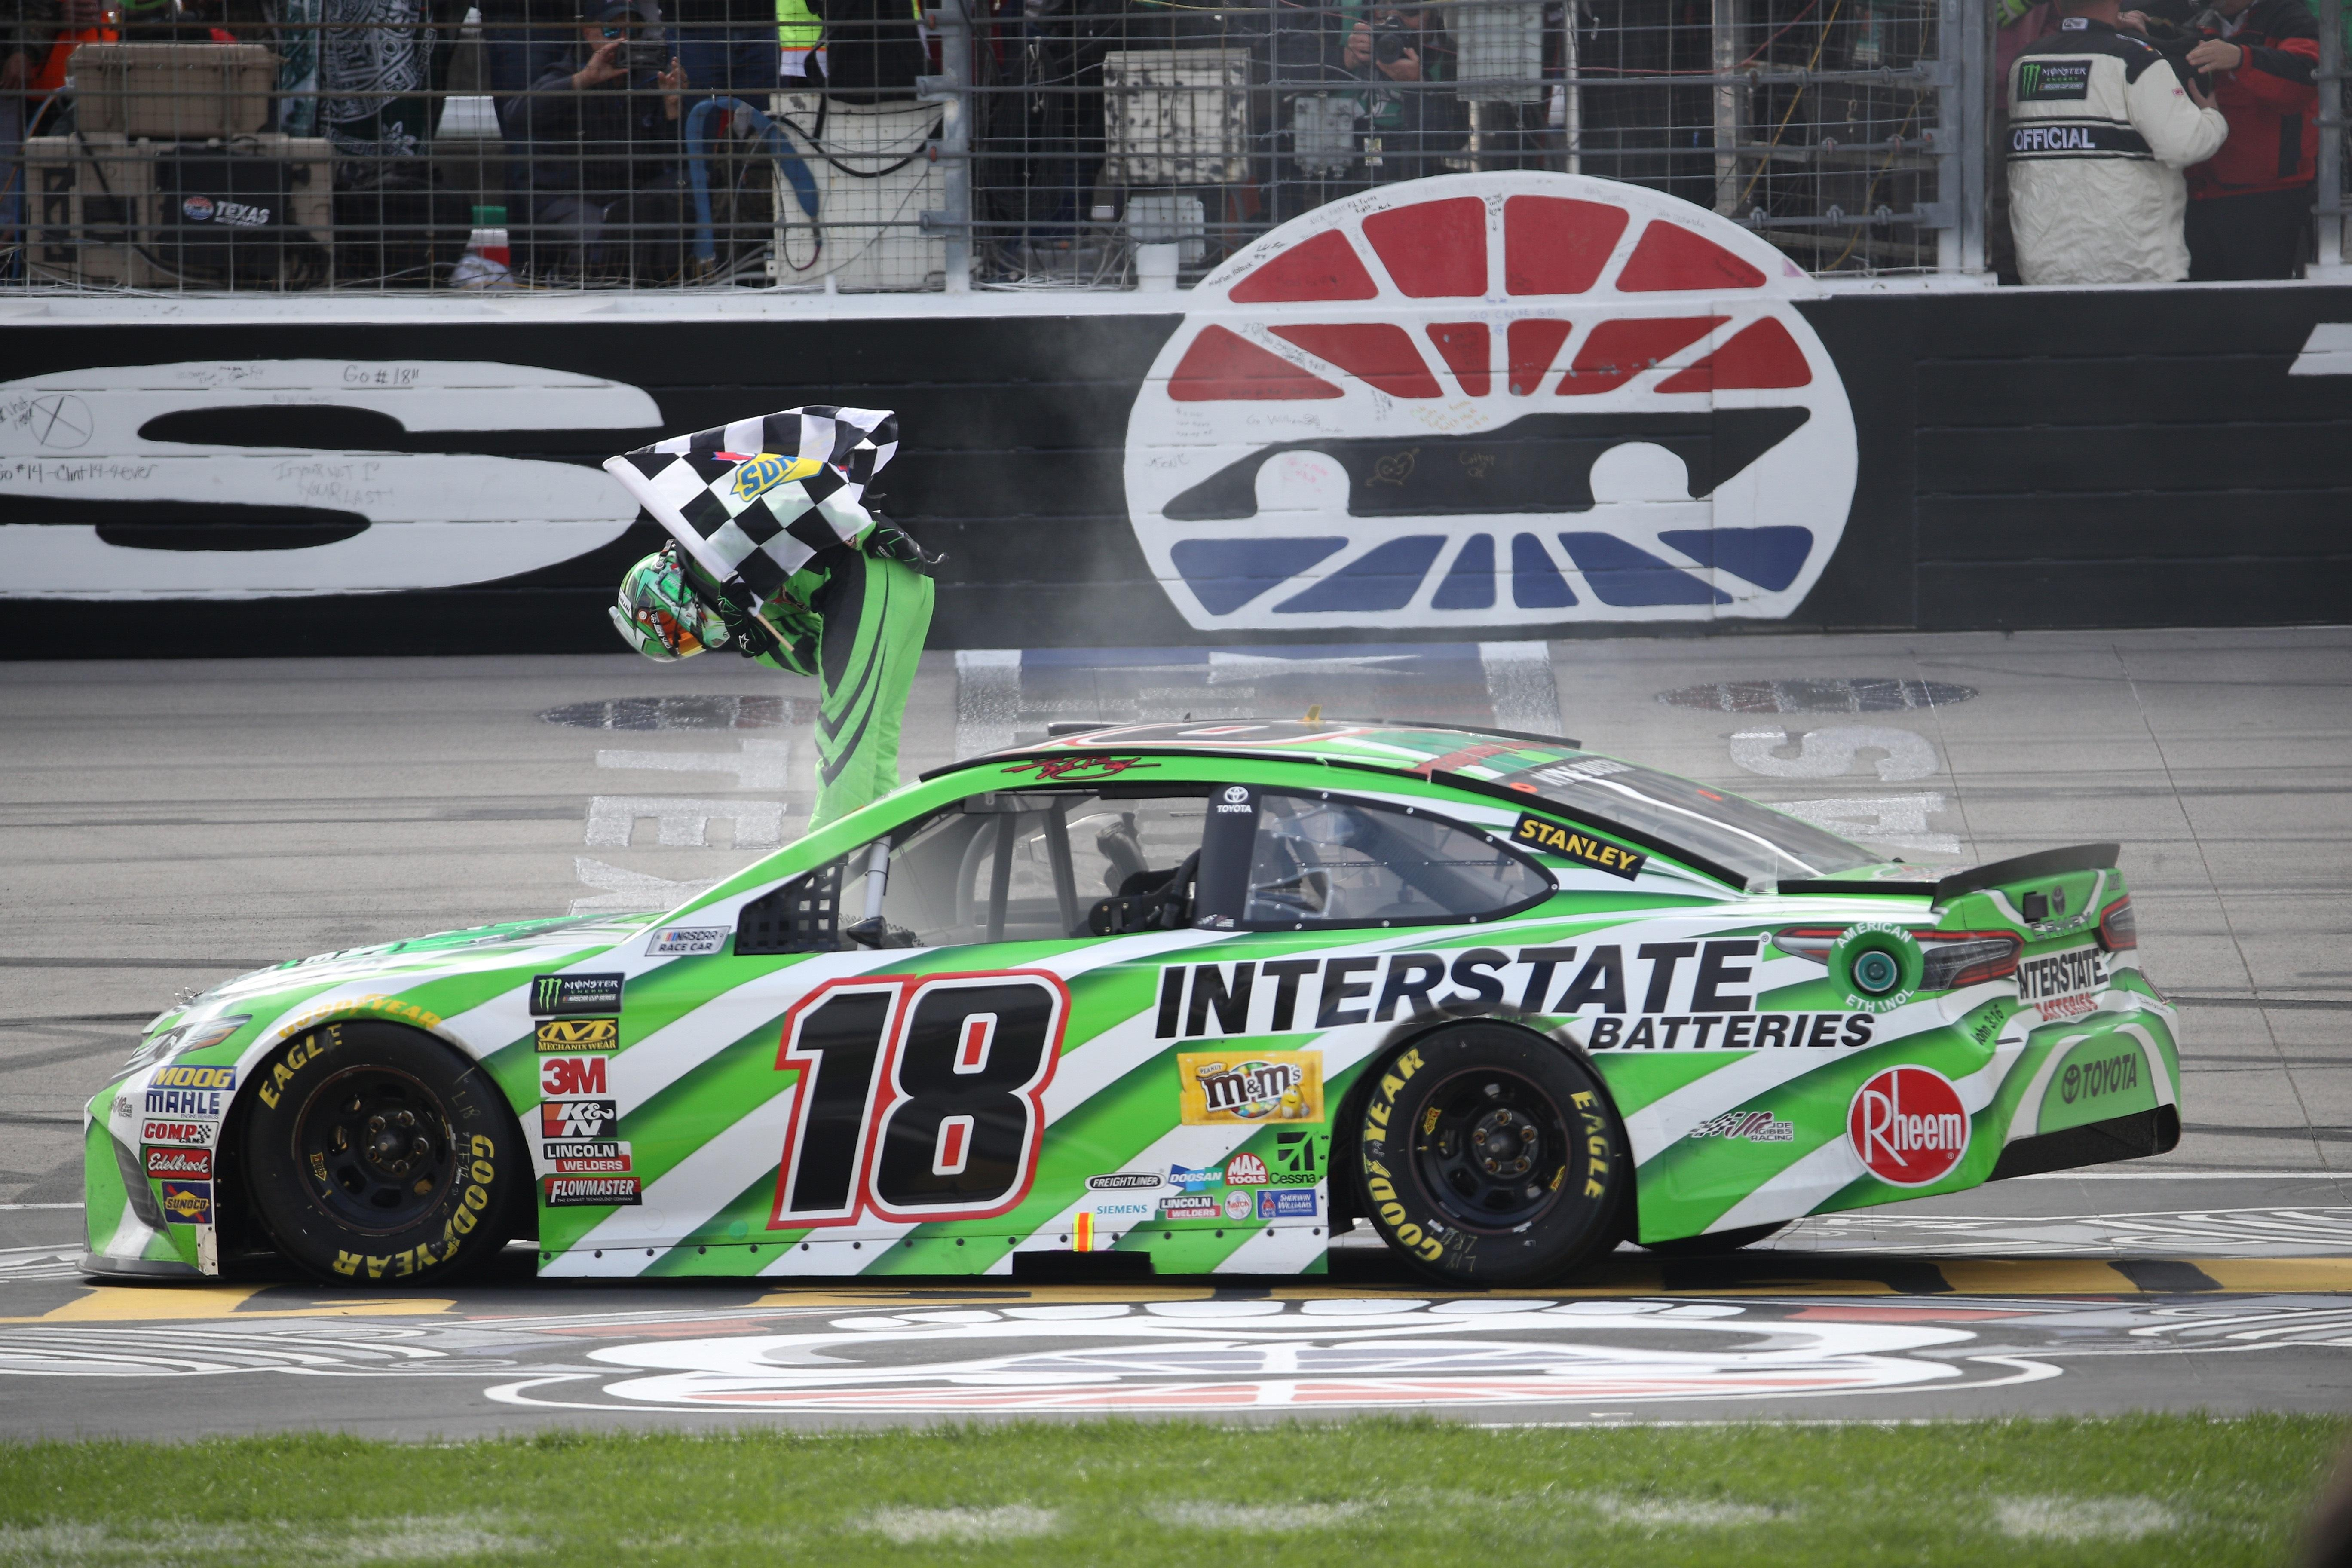 Kyle Busch wins at Texas for 3rd time | WCYB